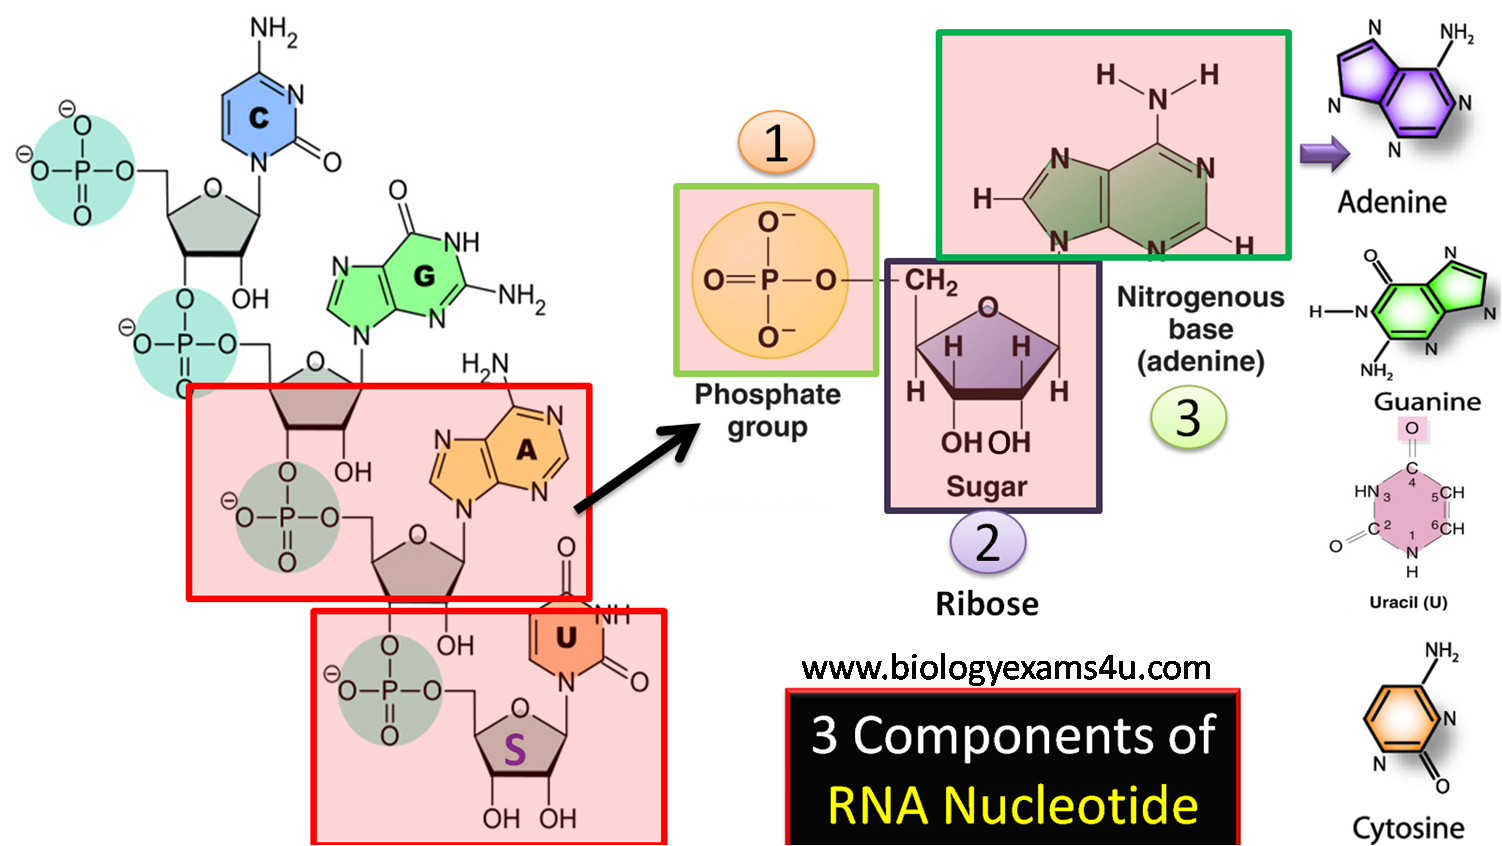 3 components of RNA nucleotide